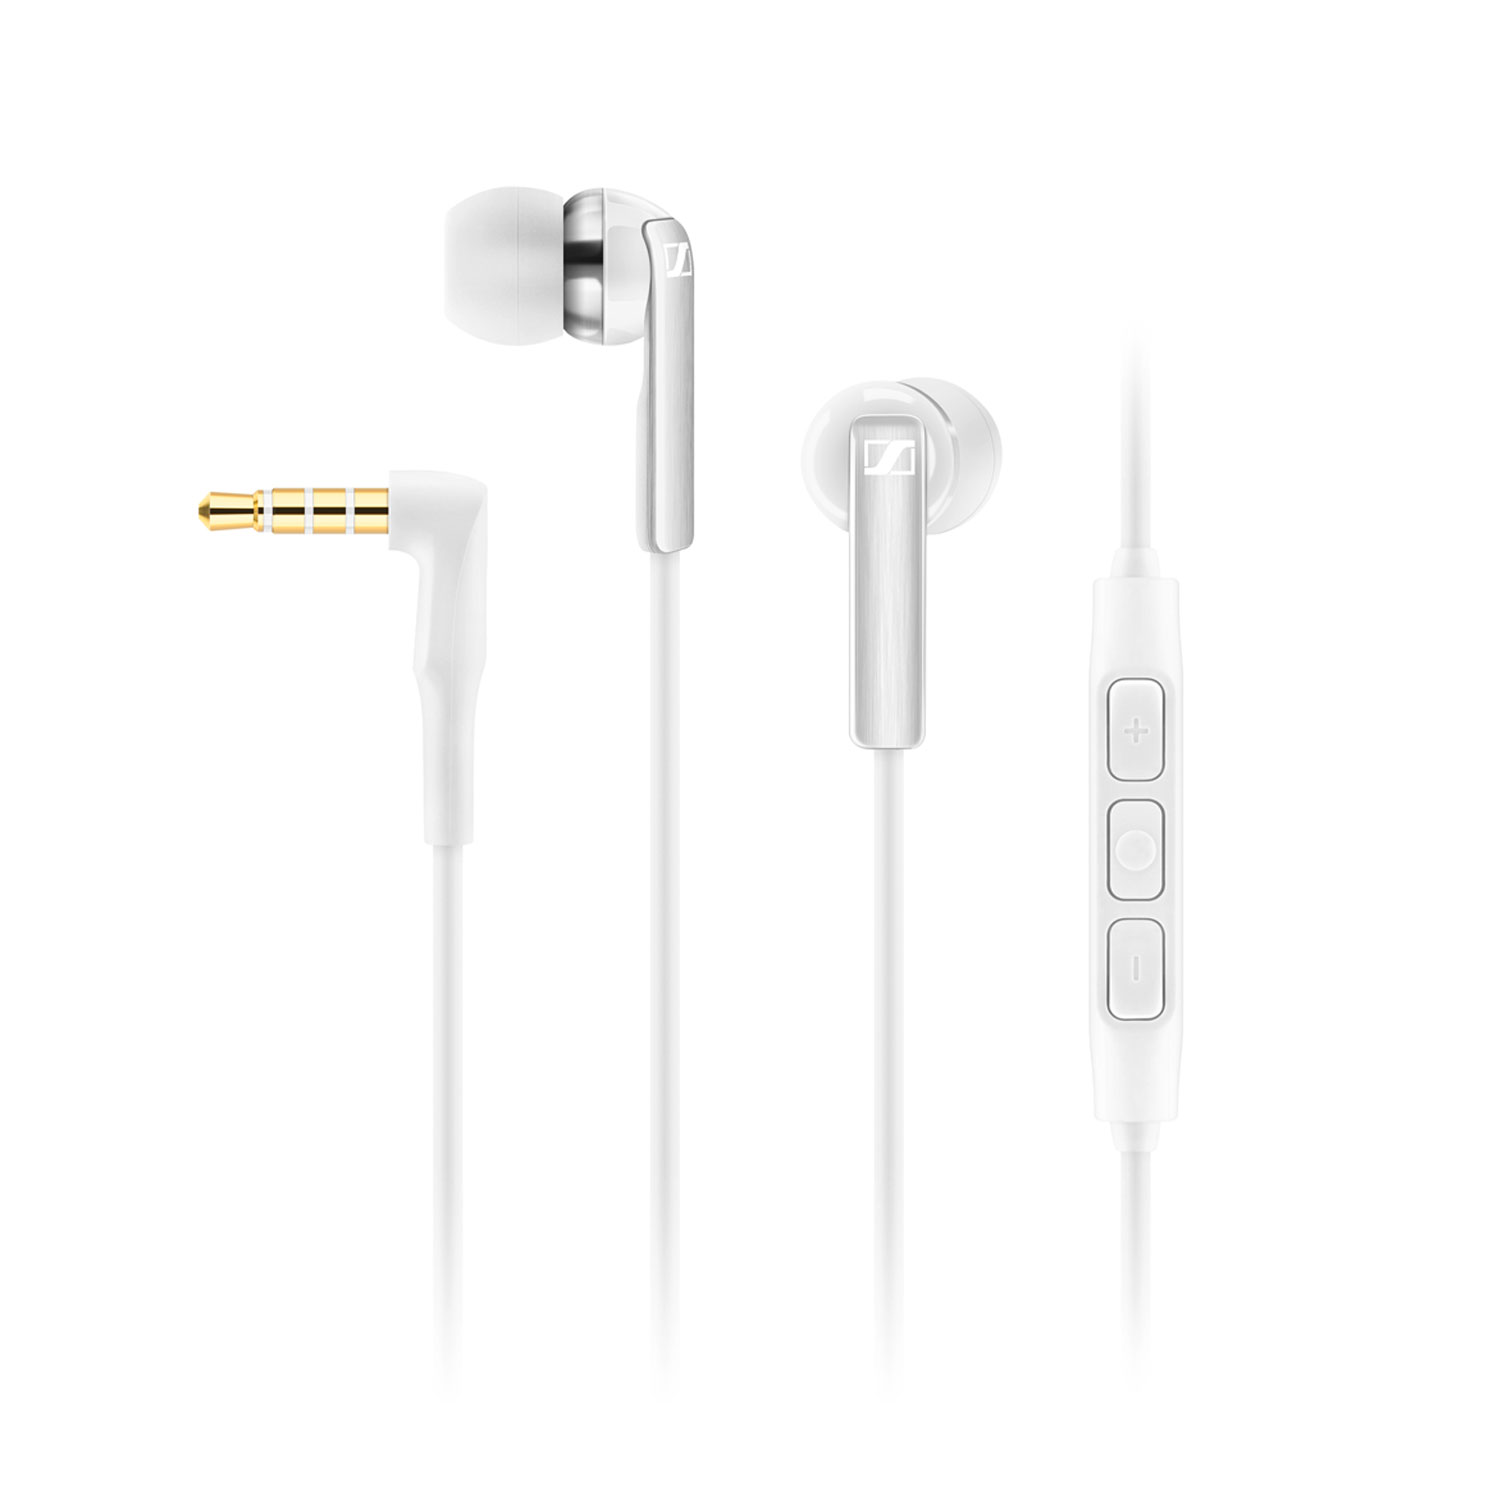 Casque Sennheiser CX 2.00i Blanc Ecouteurs intra-auriculaire - compatible iPhone/iPad/iPod